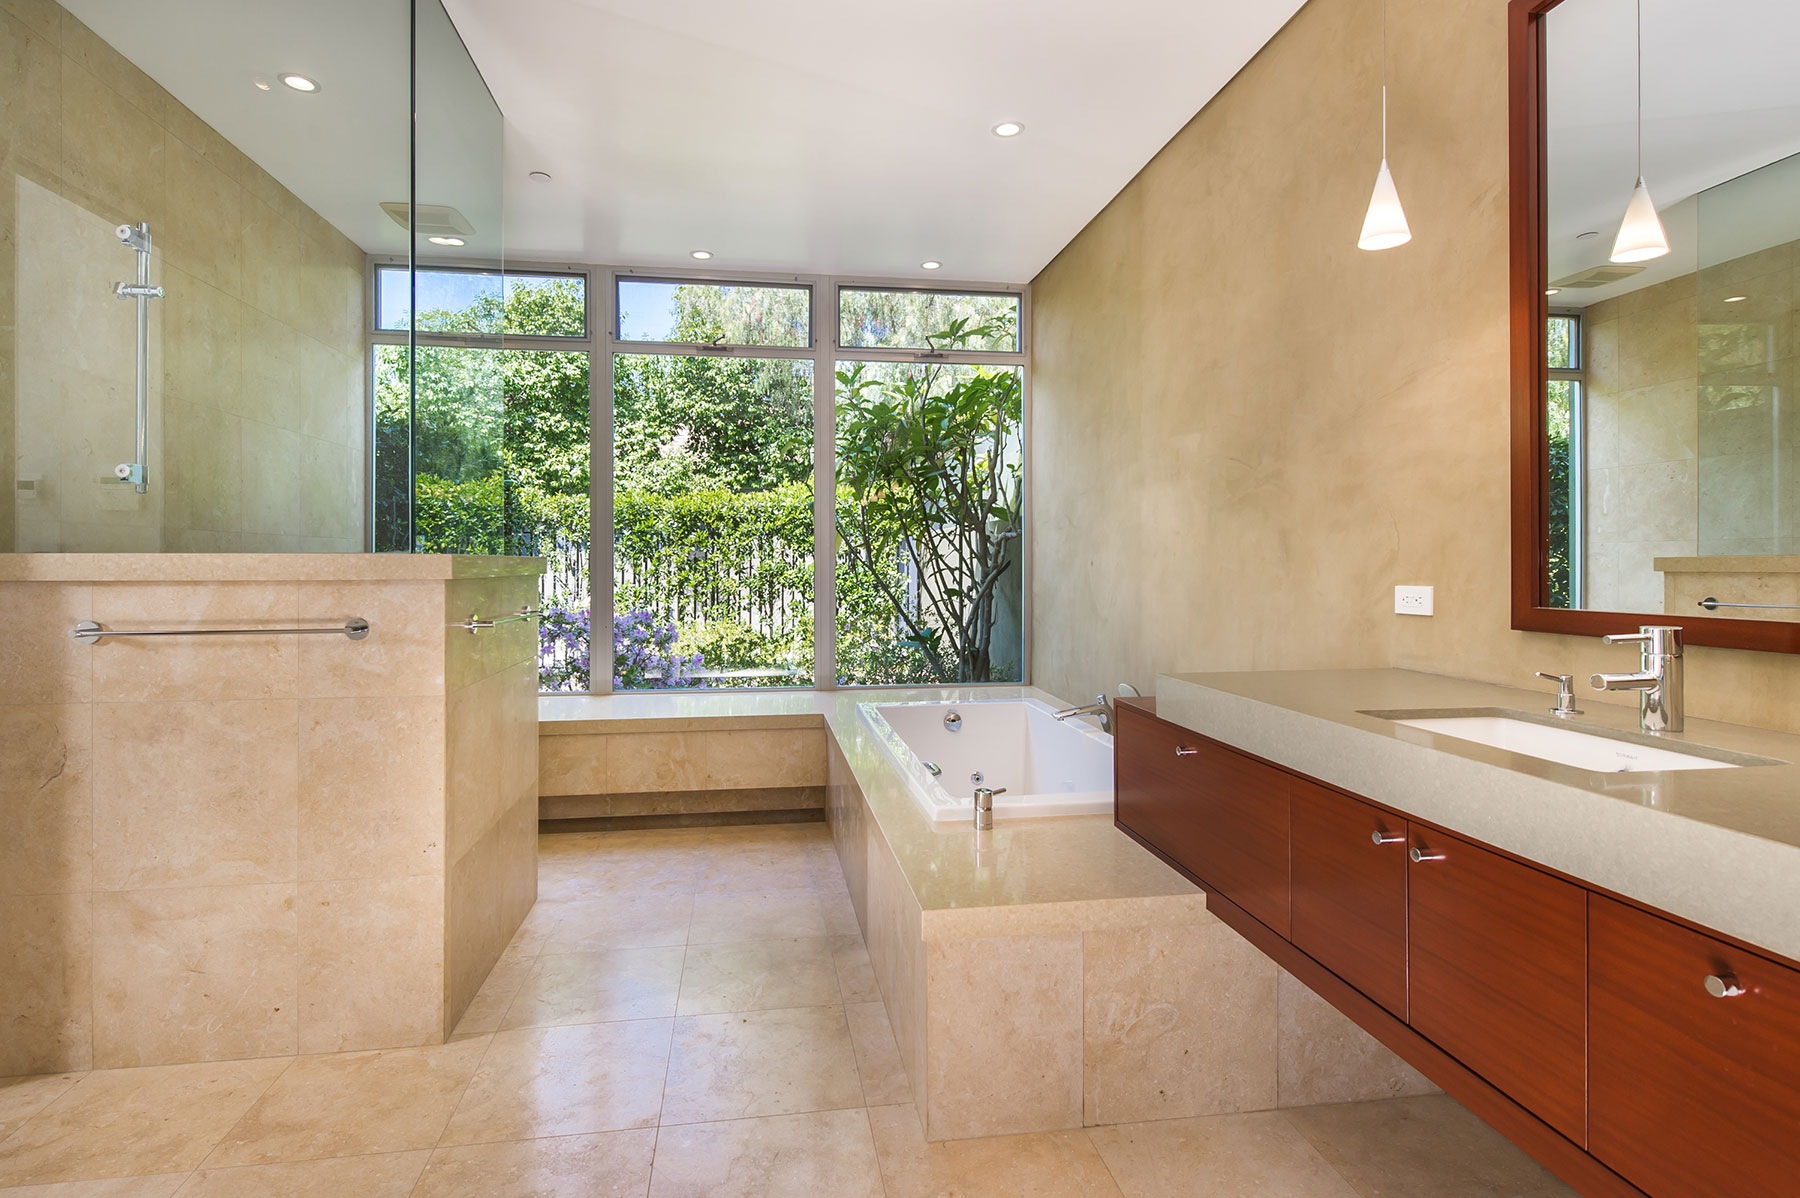 Modern Bathroom designed by Cactus, Inc.